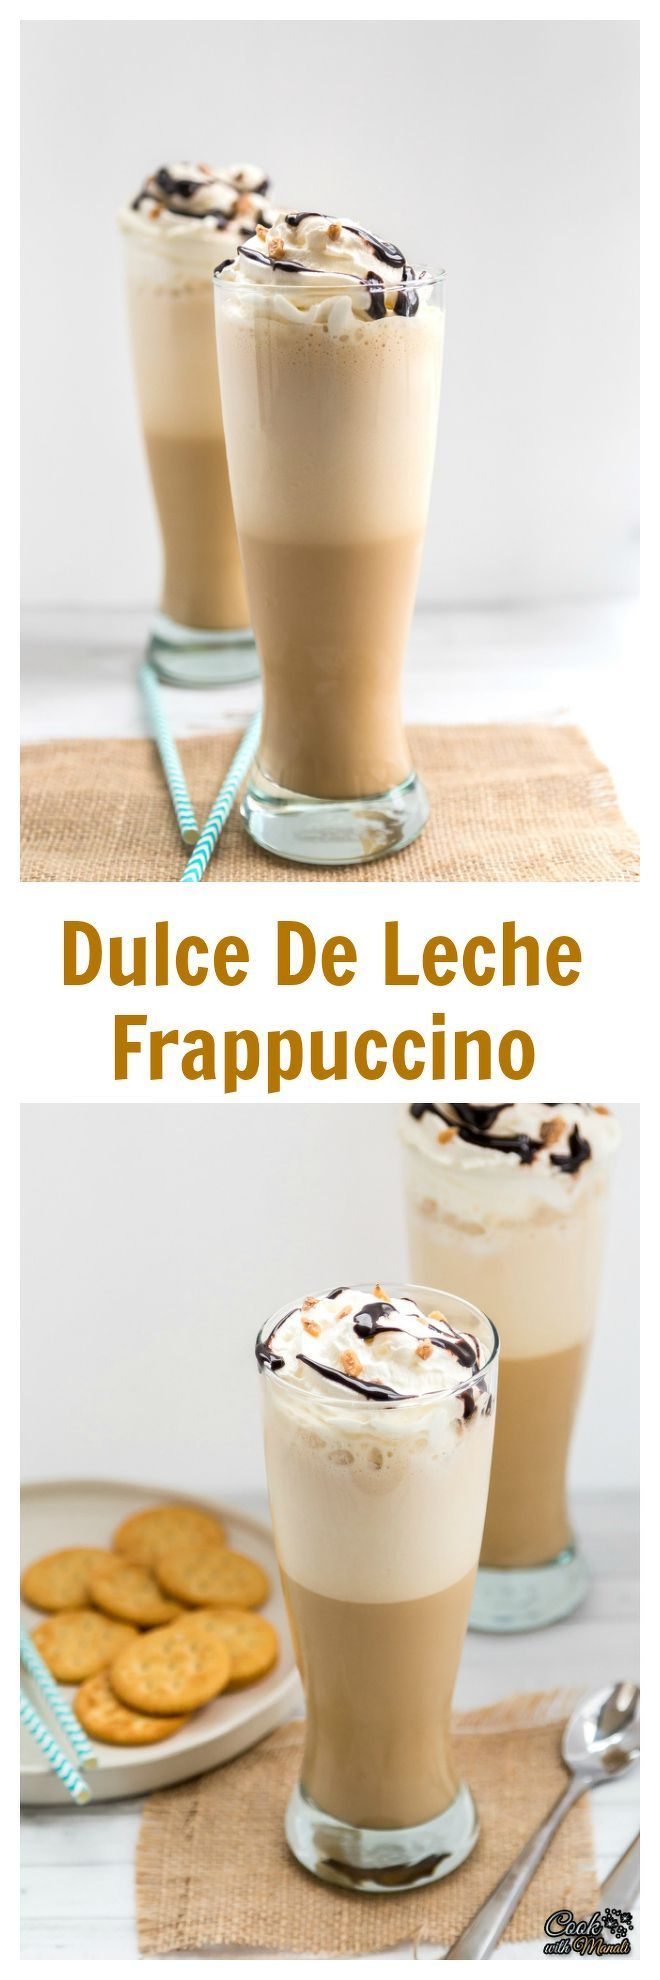 Dulce De Leche Frappuccino | Recipe | Frappuccino, Treats and Dulce de ...